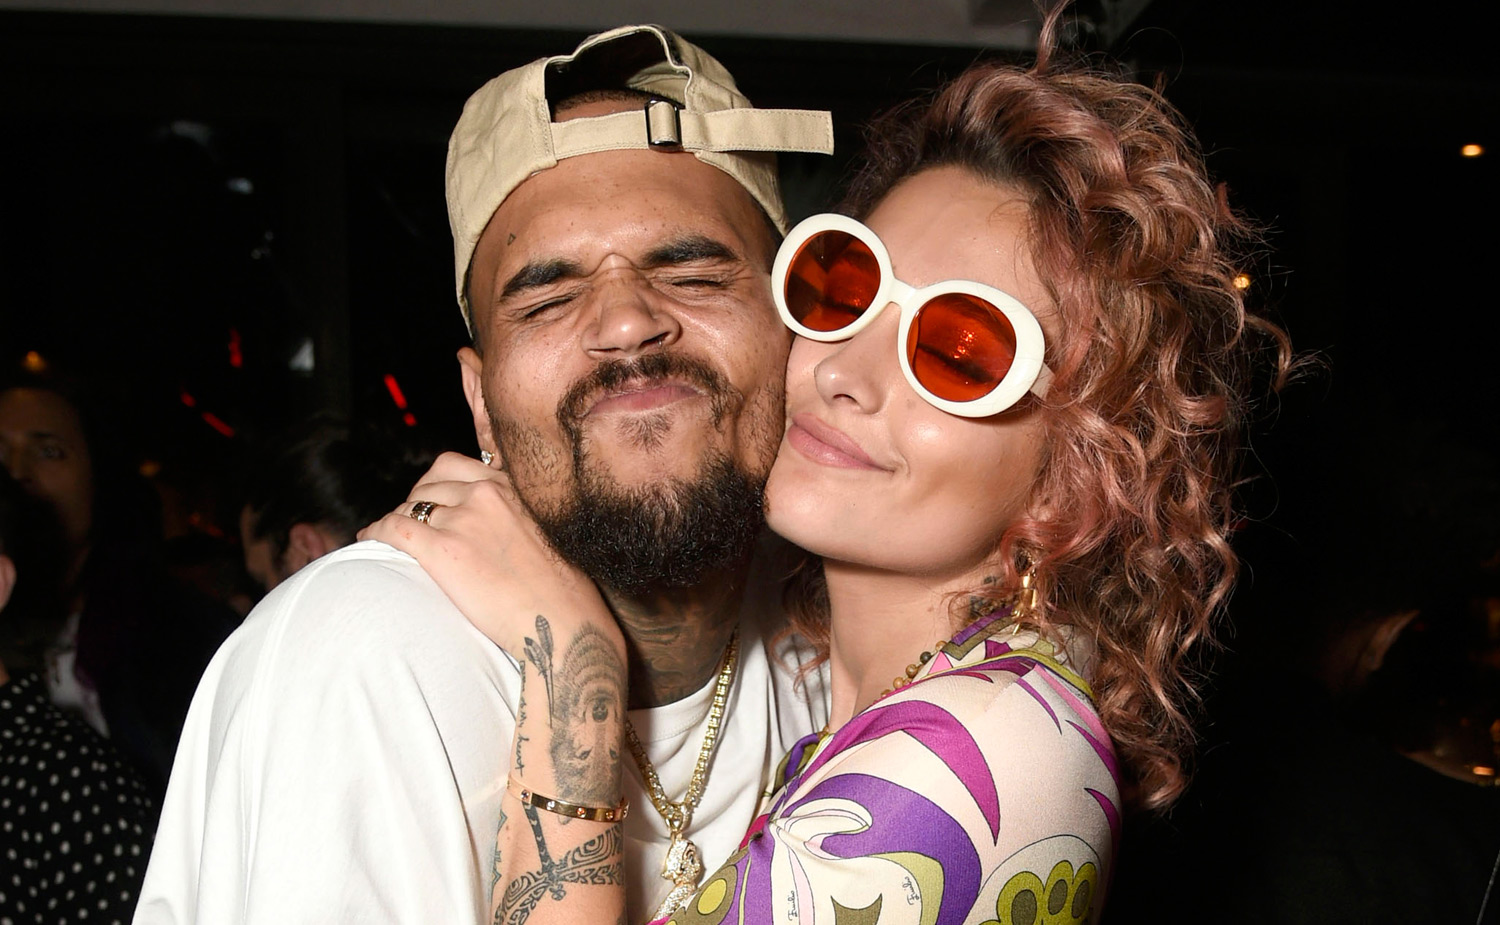 Who is dating chris brown 2018